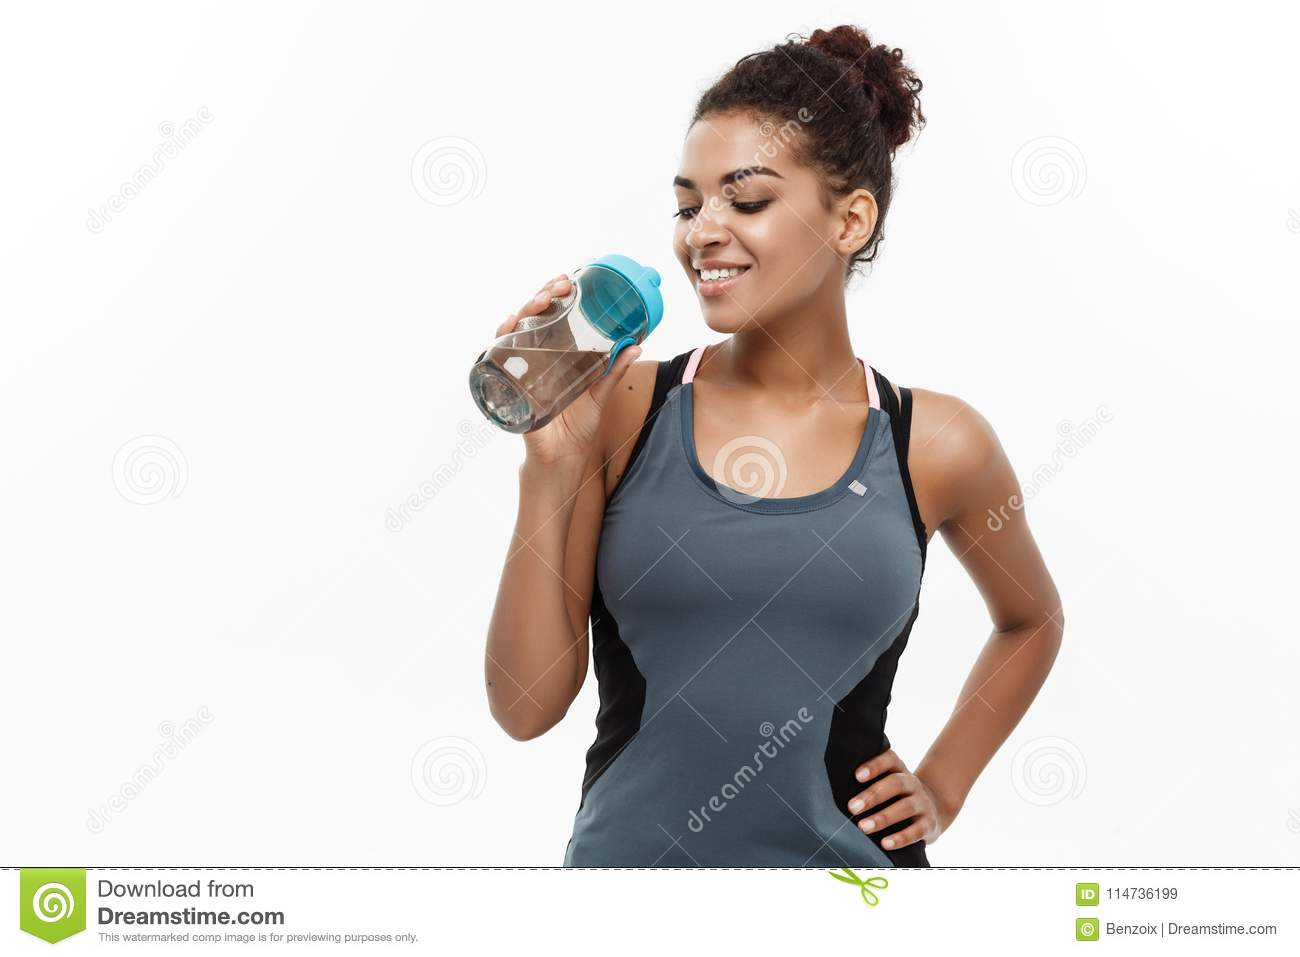 Healthy and Fitness concept - beautiful African American girl in sport clothes drinking water after workout. Isolated on